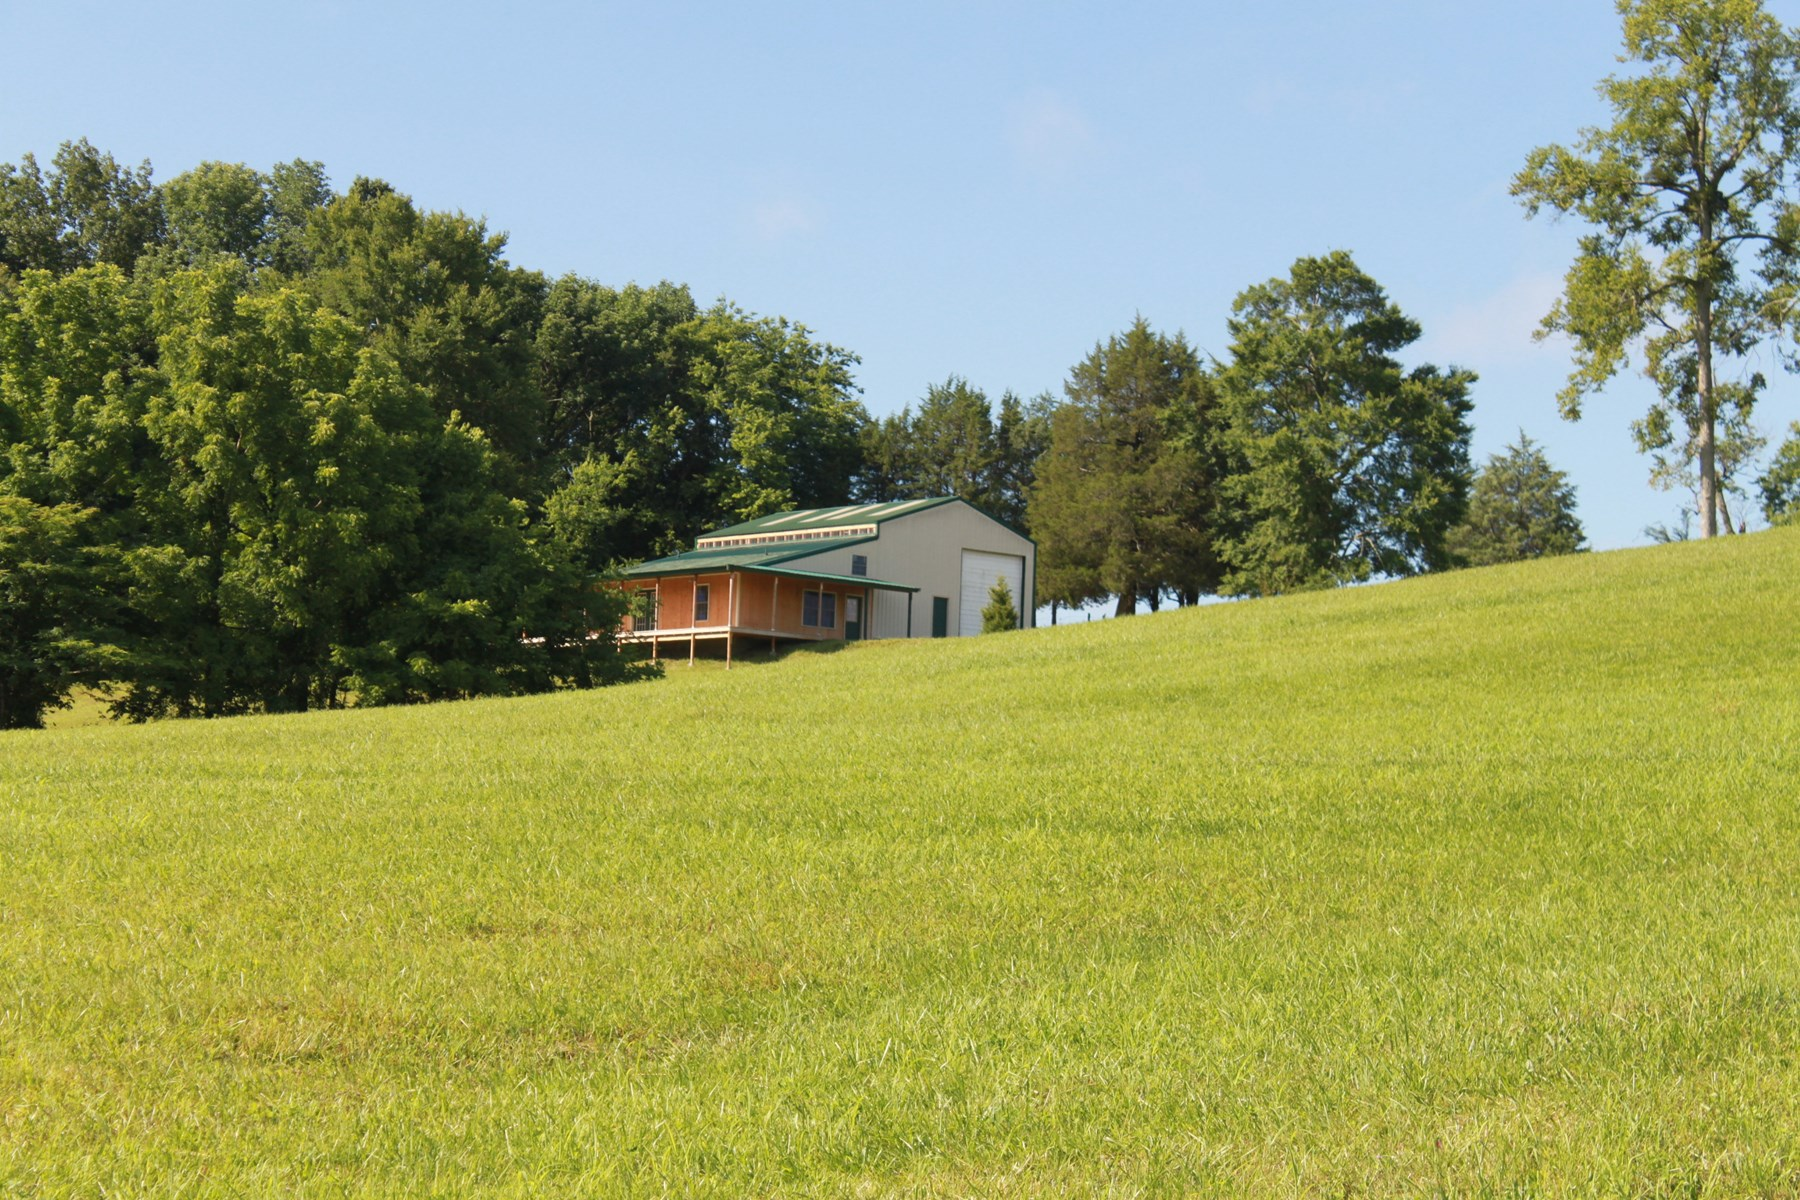 RV/Shop Bldg, Living Quarters and 10 Acres in Allen Co, KY